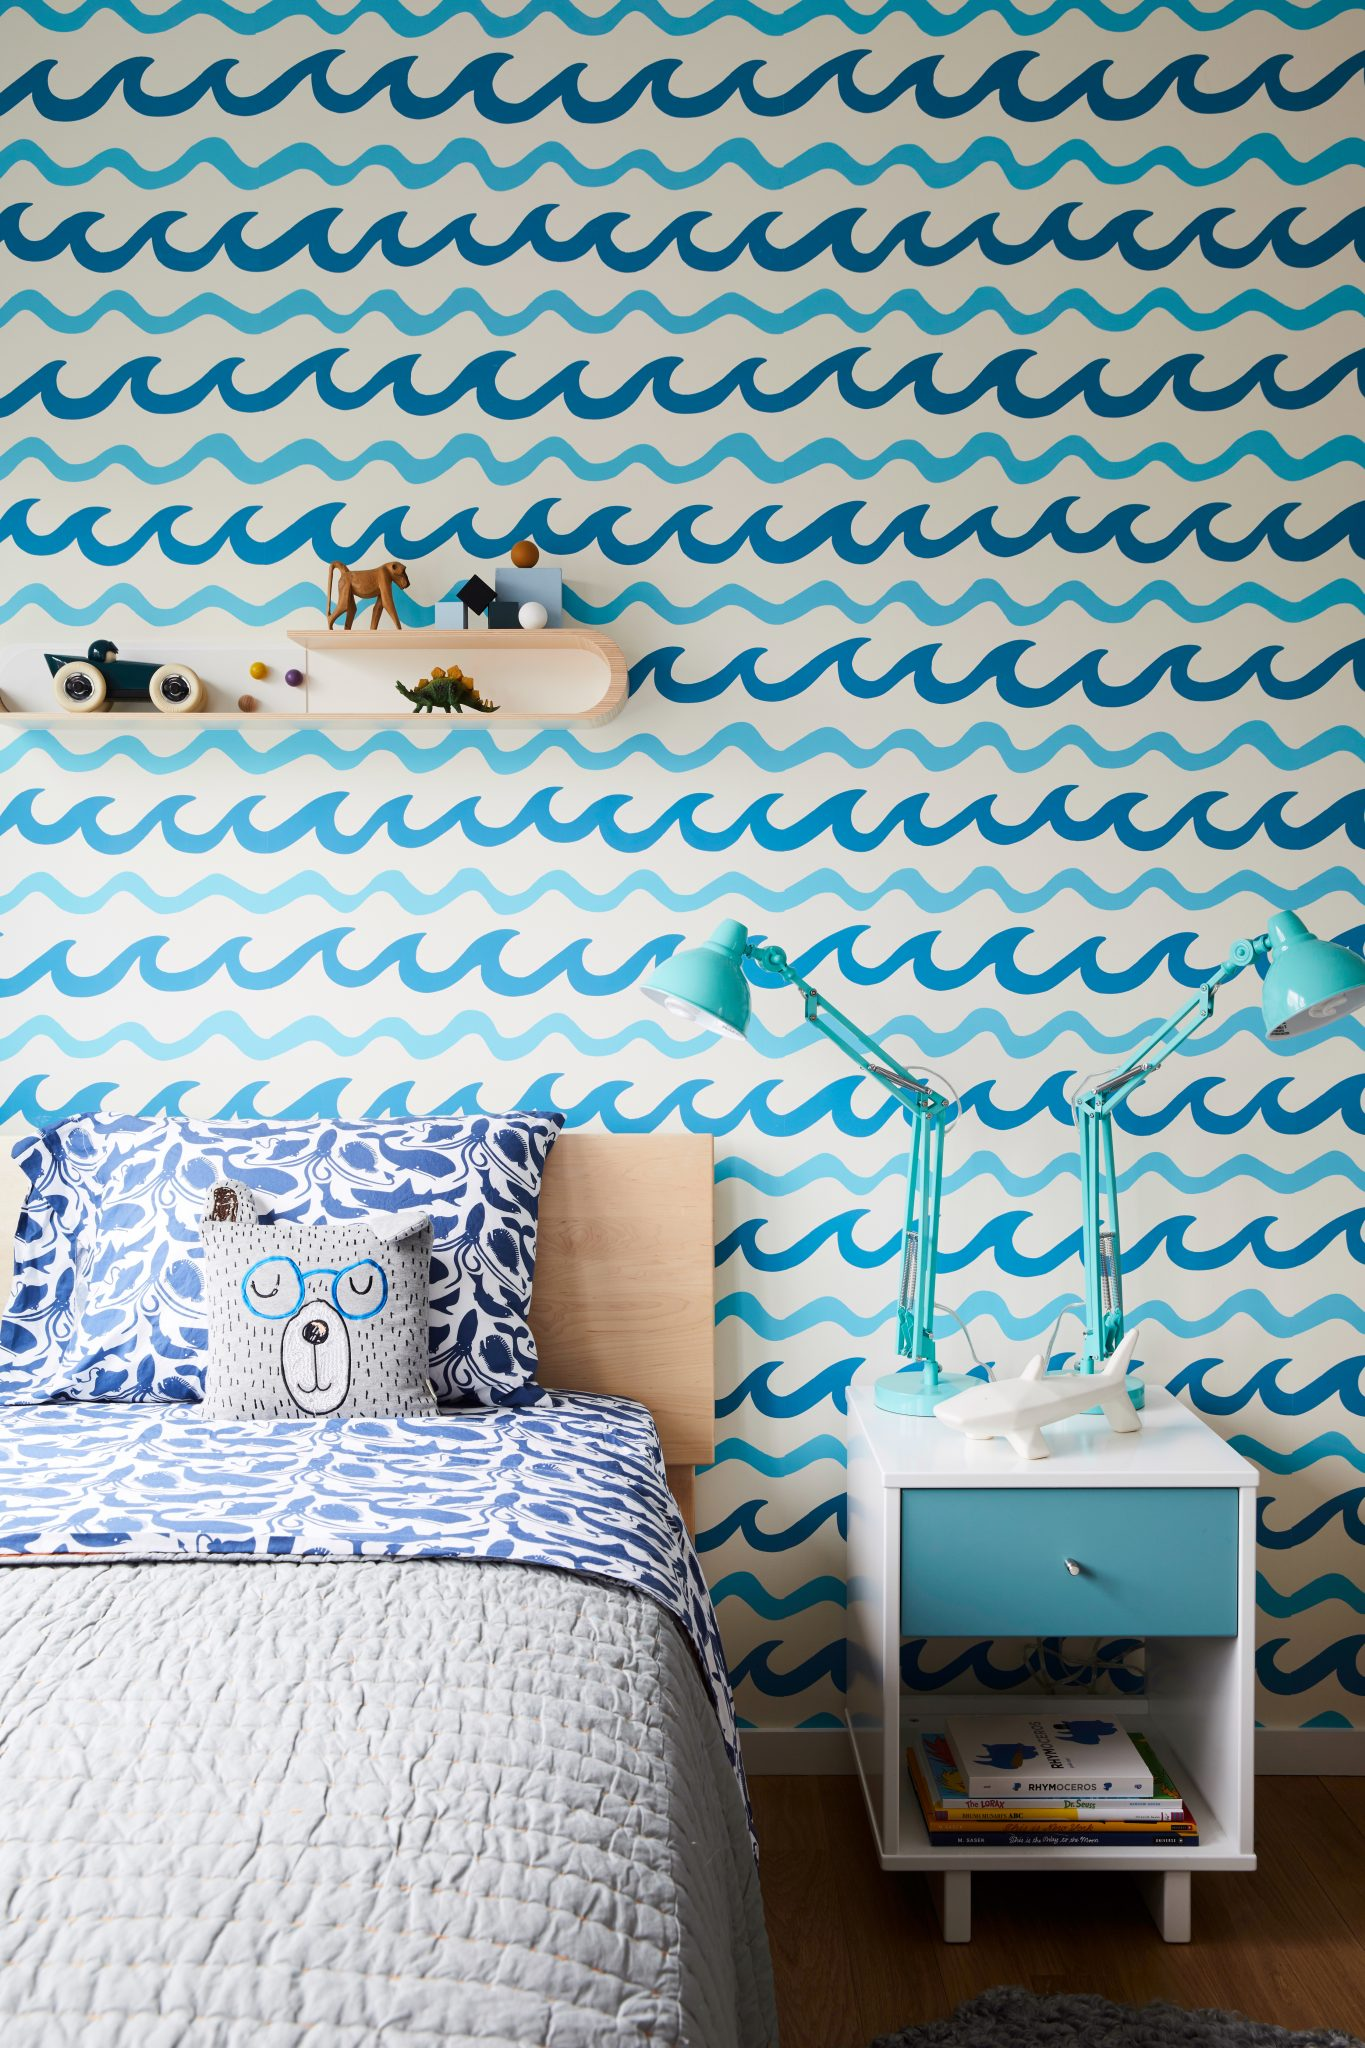 Boys beach bedroom with aimee wilder wallpaper and rafa shelves